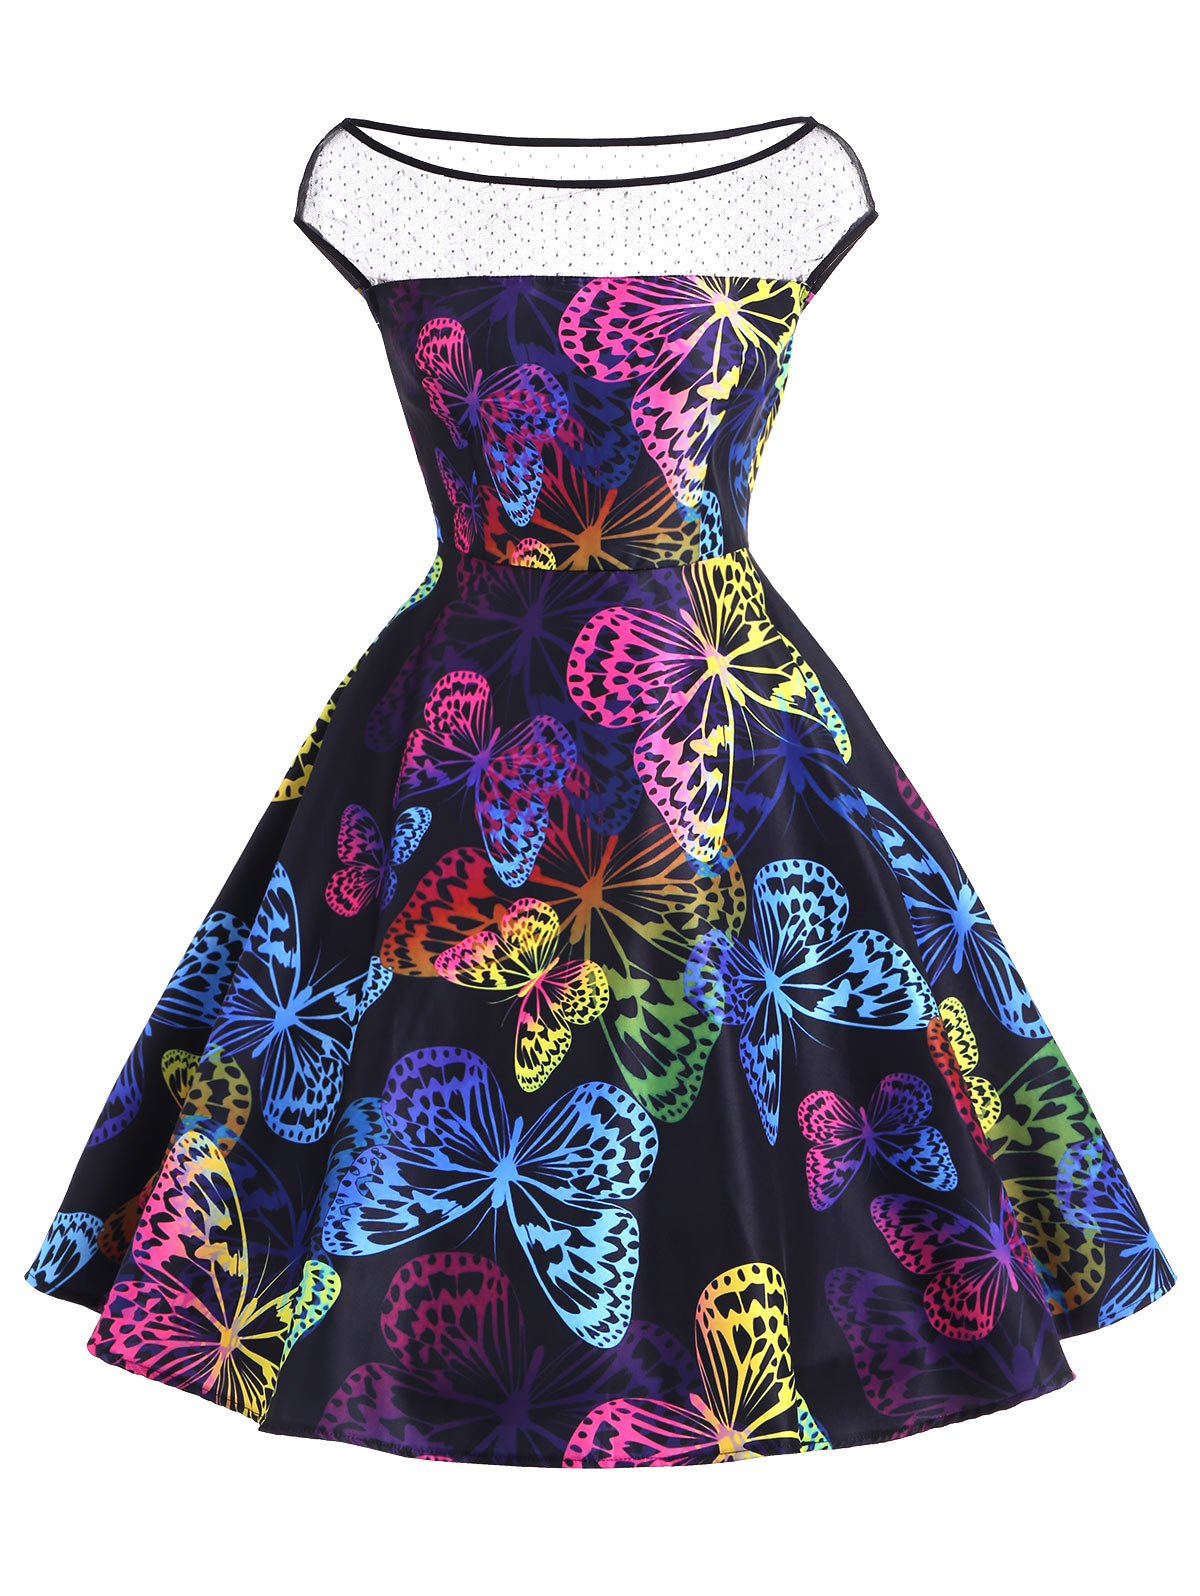 Chic Butterfly Print Vintage Flare Dress